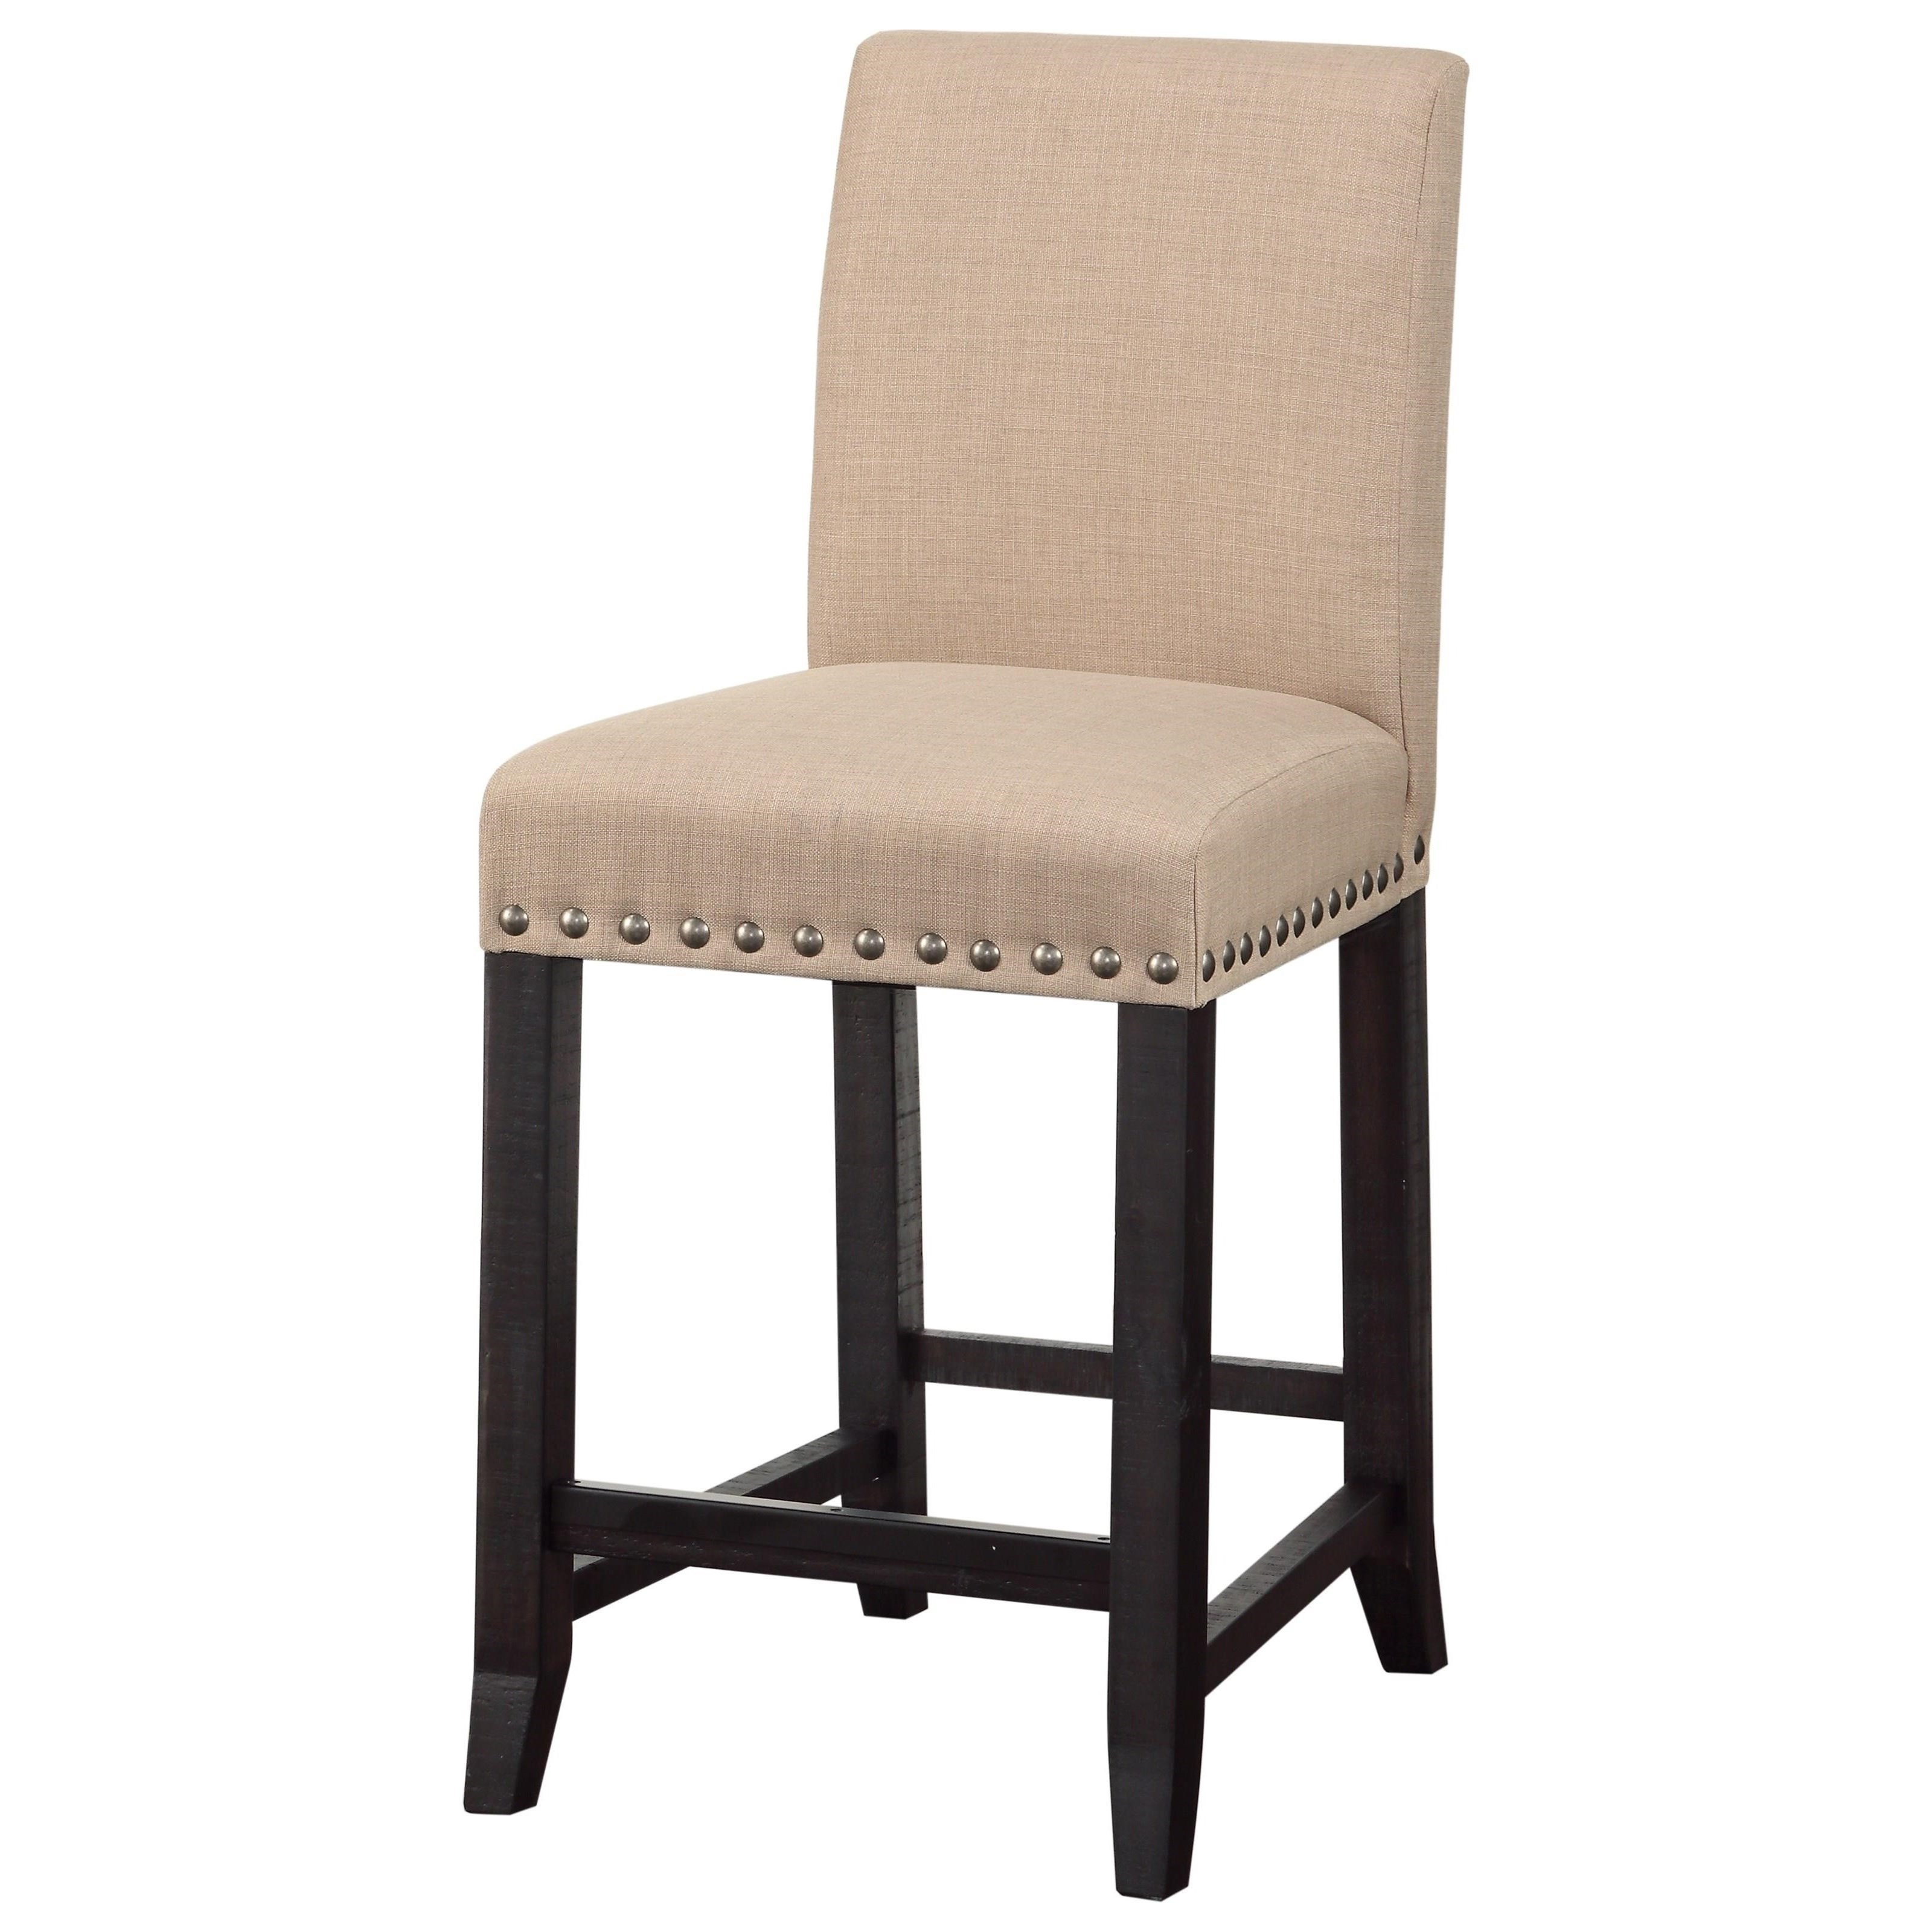 Upholstered Kitchen Counter Stool